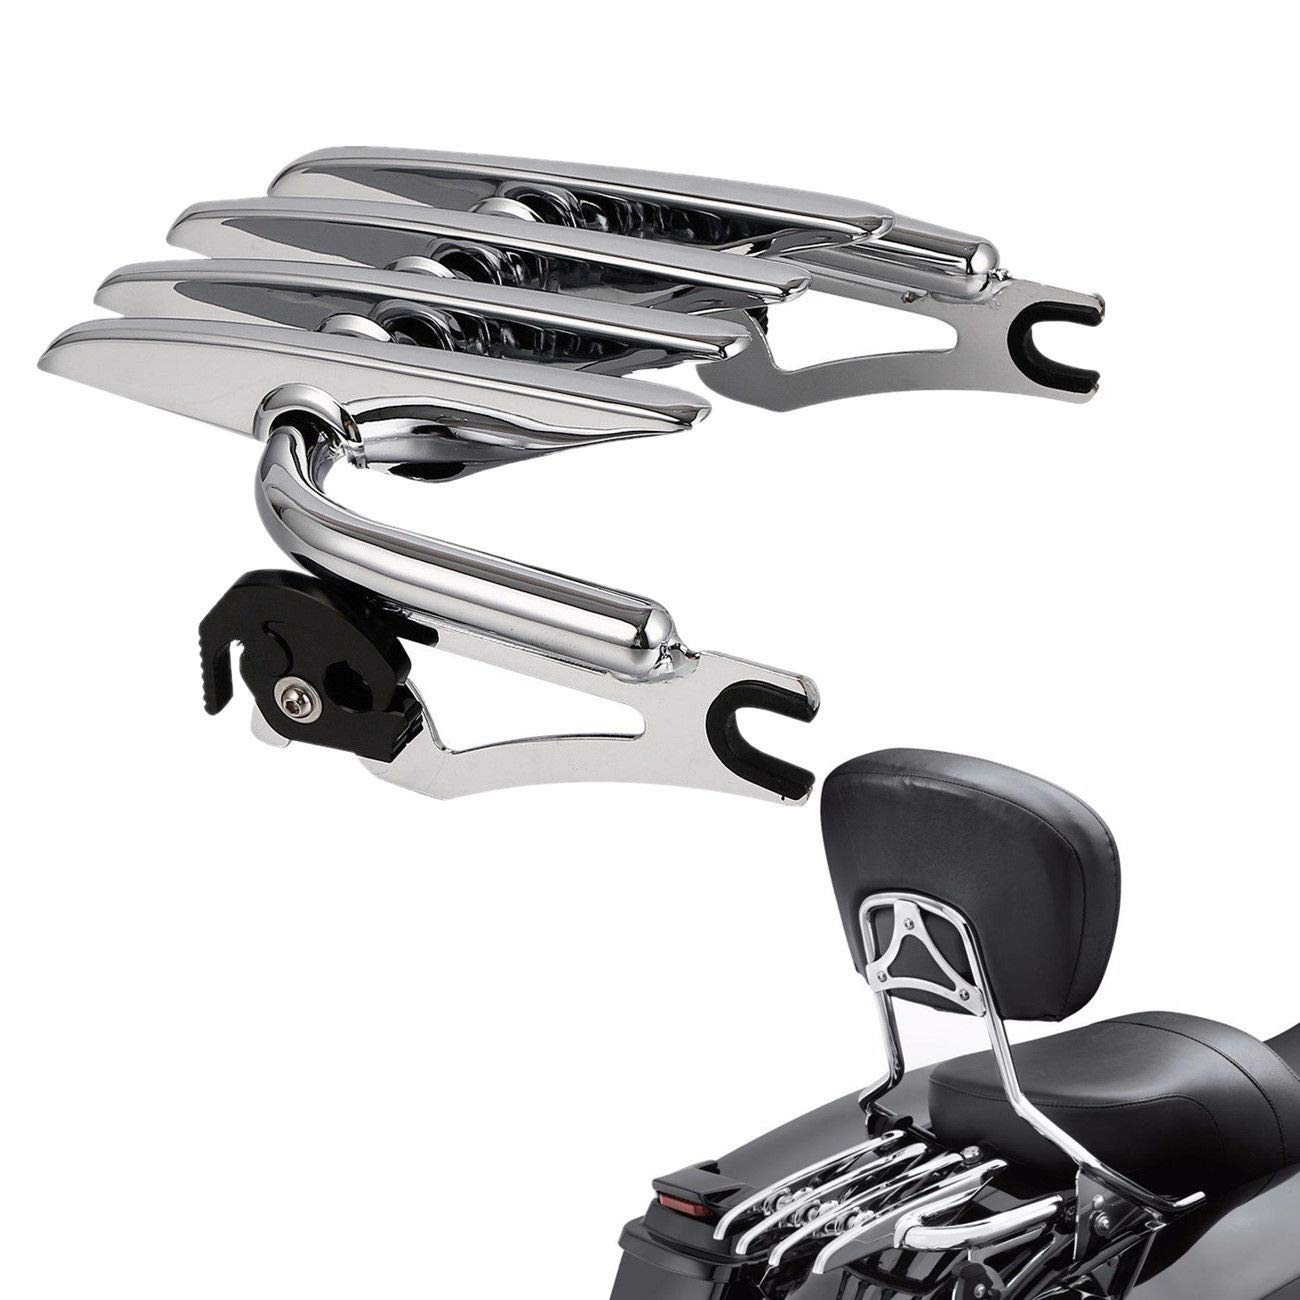 Chrome TCMT Detachable Stealth Luggage Rack 4 Point Docking Hardware Kit Fits For Harley FLHR FLHT FLHX FLTR 2014-2020